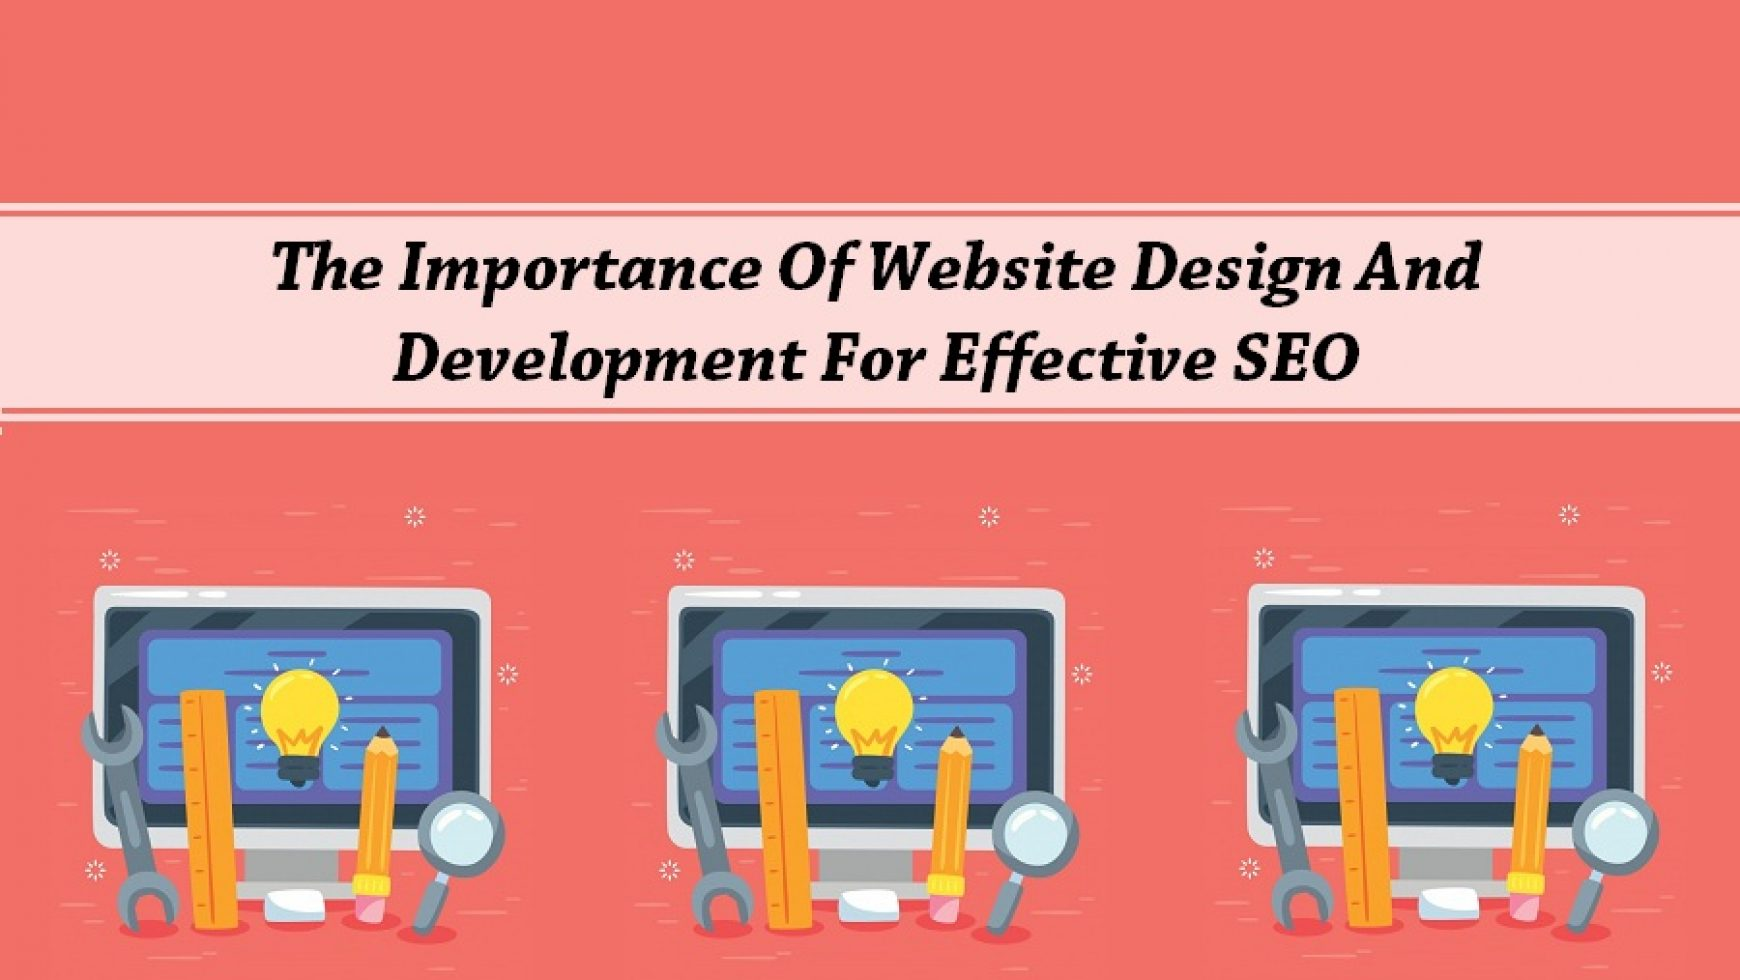 The Importance Of Website Design And Development For Effective SEO